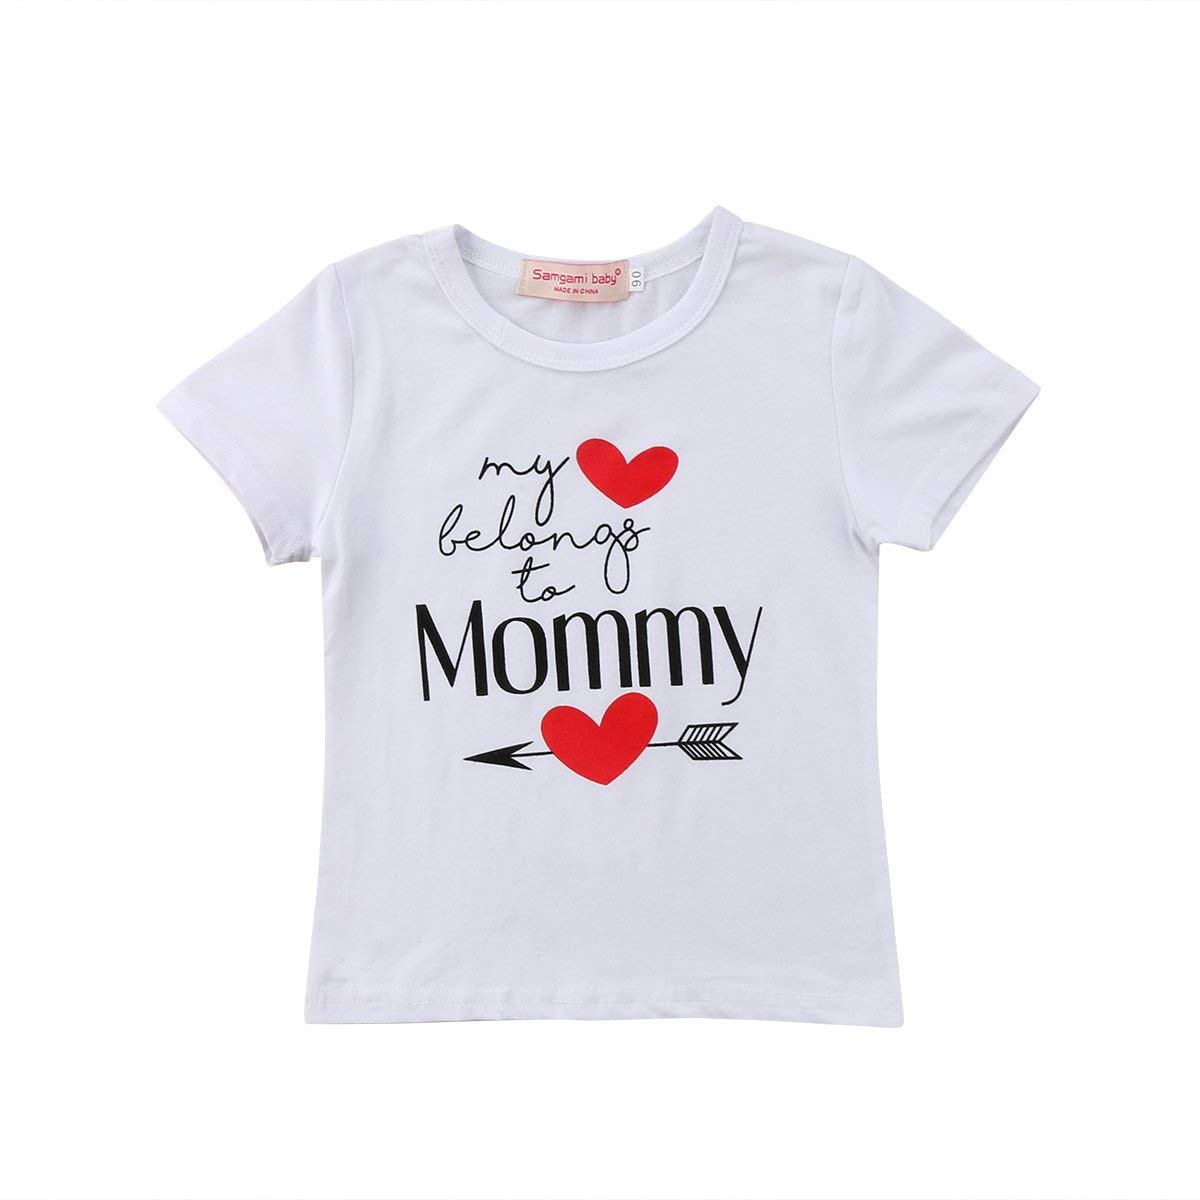 fbf1dec717cb Get Quotations · Newborn Infant Baby Boys Girls Valentine s Day White  Cotton Romper Bodysuit Kids T-Shirt Outfits